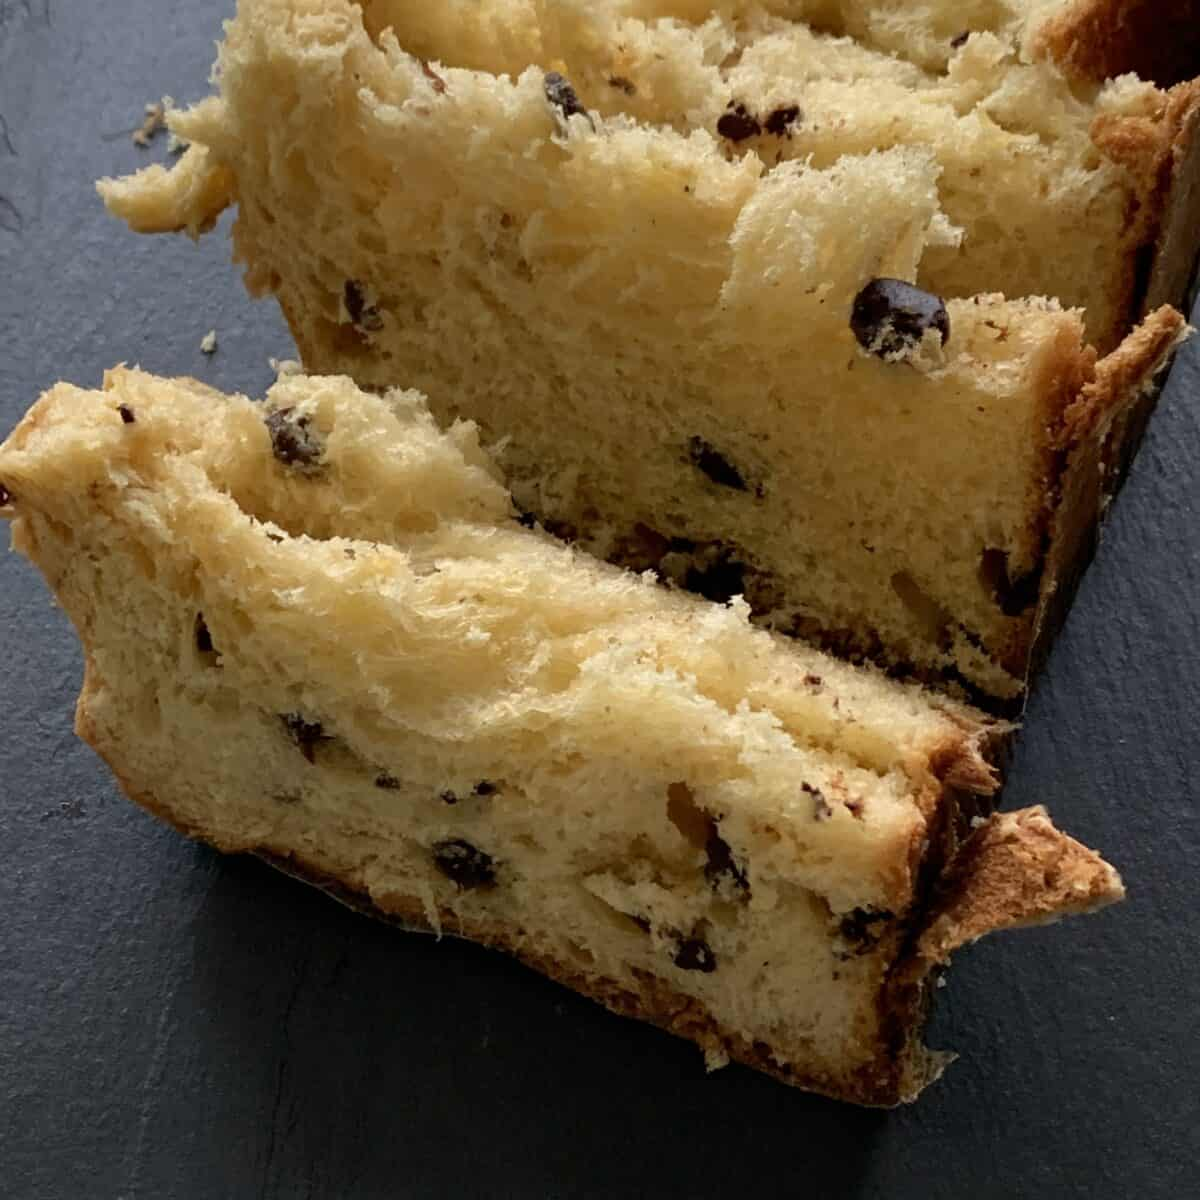 slices of panettone